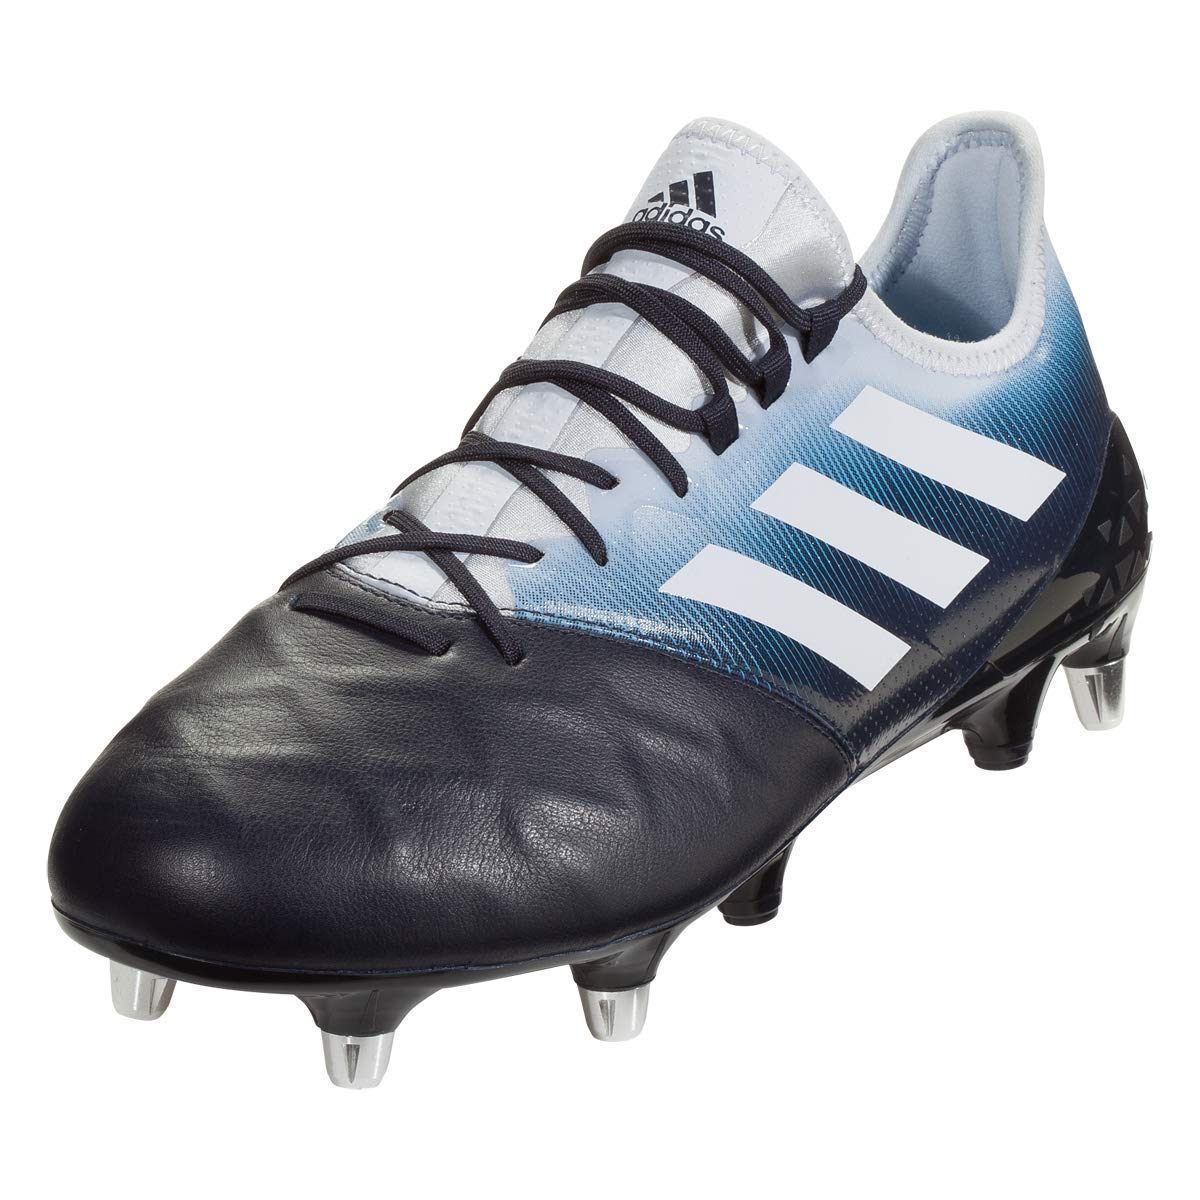 adidas Kakari Light SG Rugby Boots, Blue, US 12 by adidas